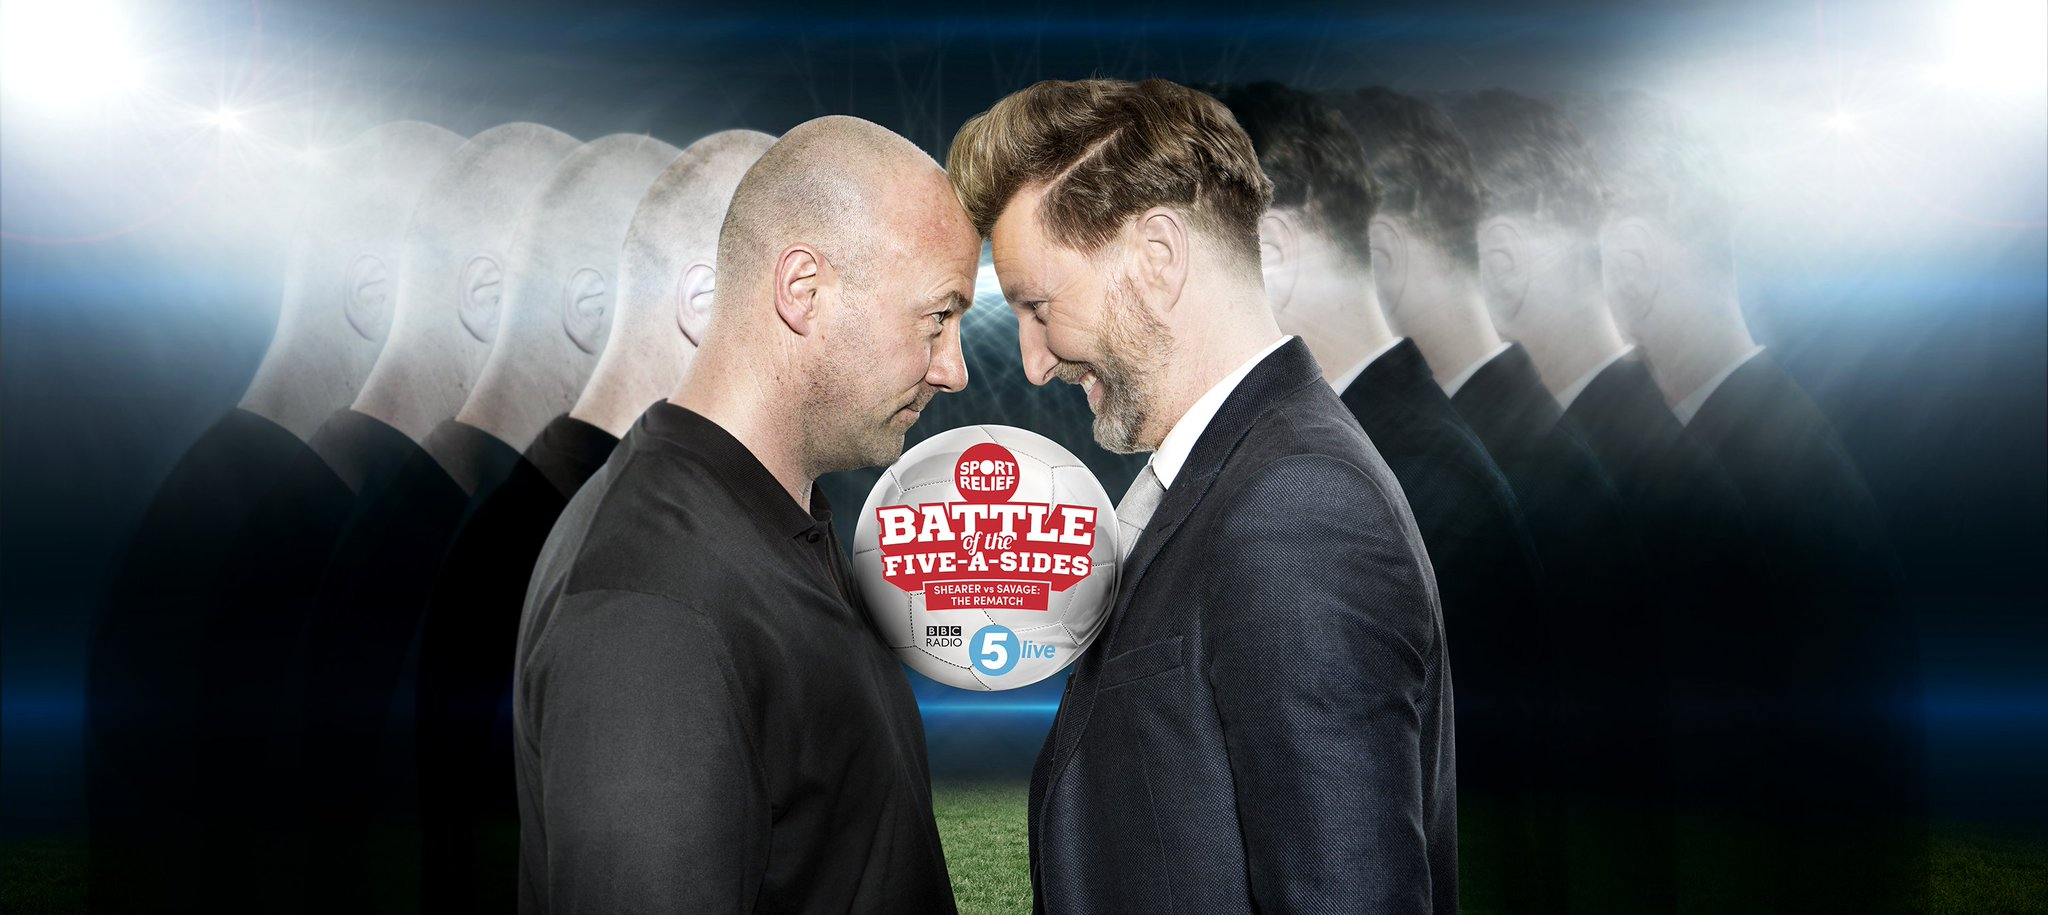 RT @5liveSport: Want to play ⚽ with @RobbieSavage8 or @AlanShearer ?  You can for @SportRelief  https://t.co/6P7yrYEffx #5liveAside https:/…